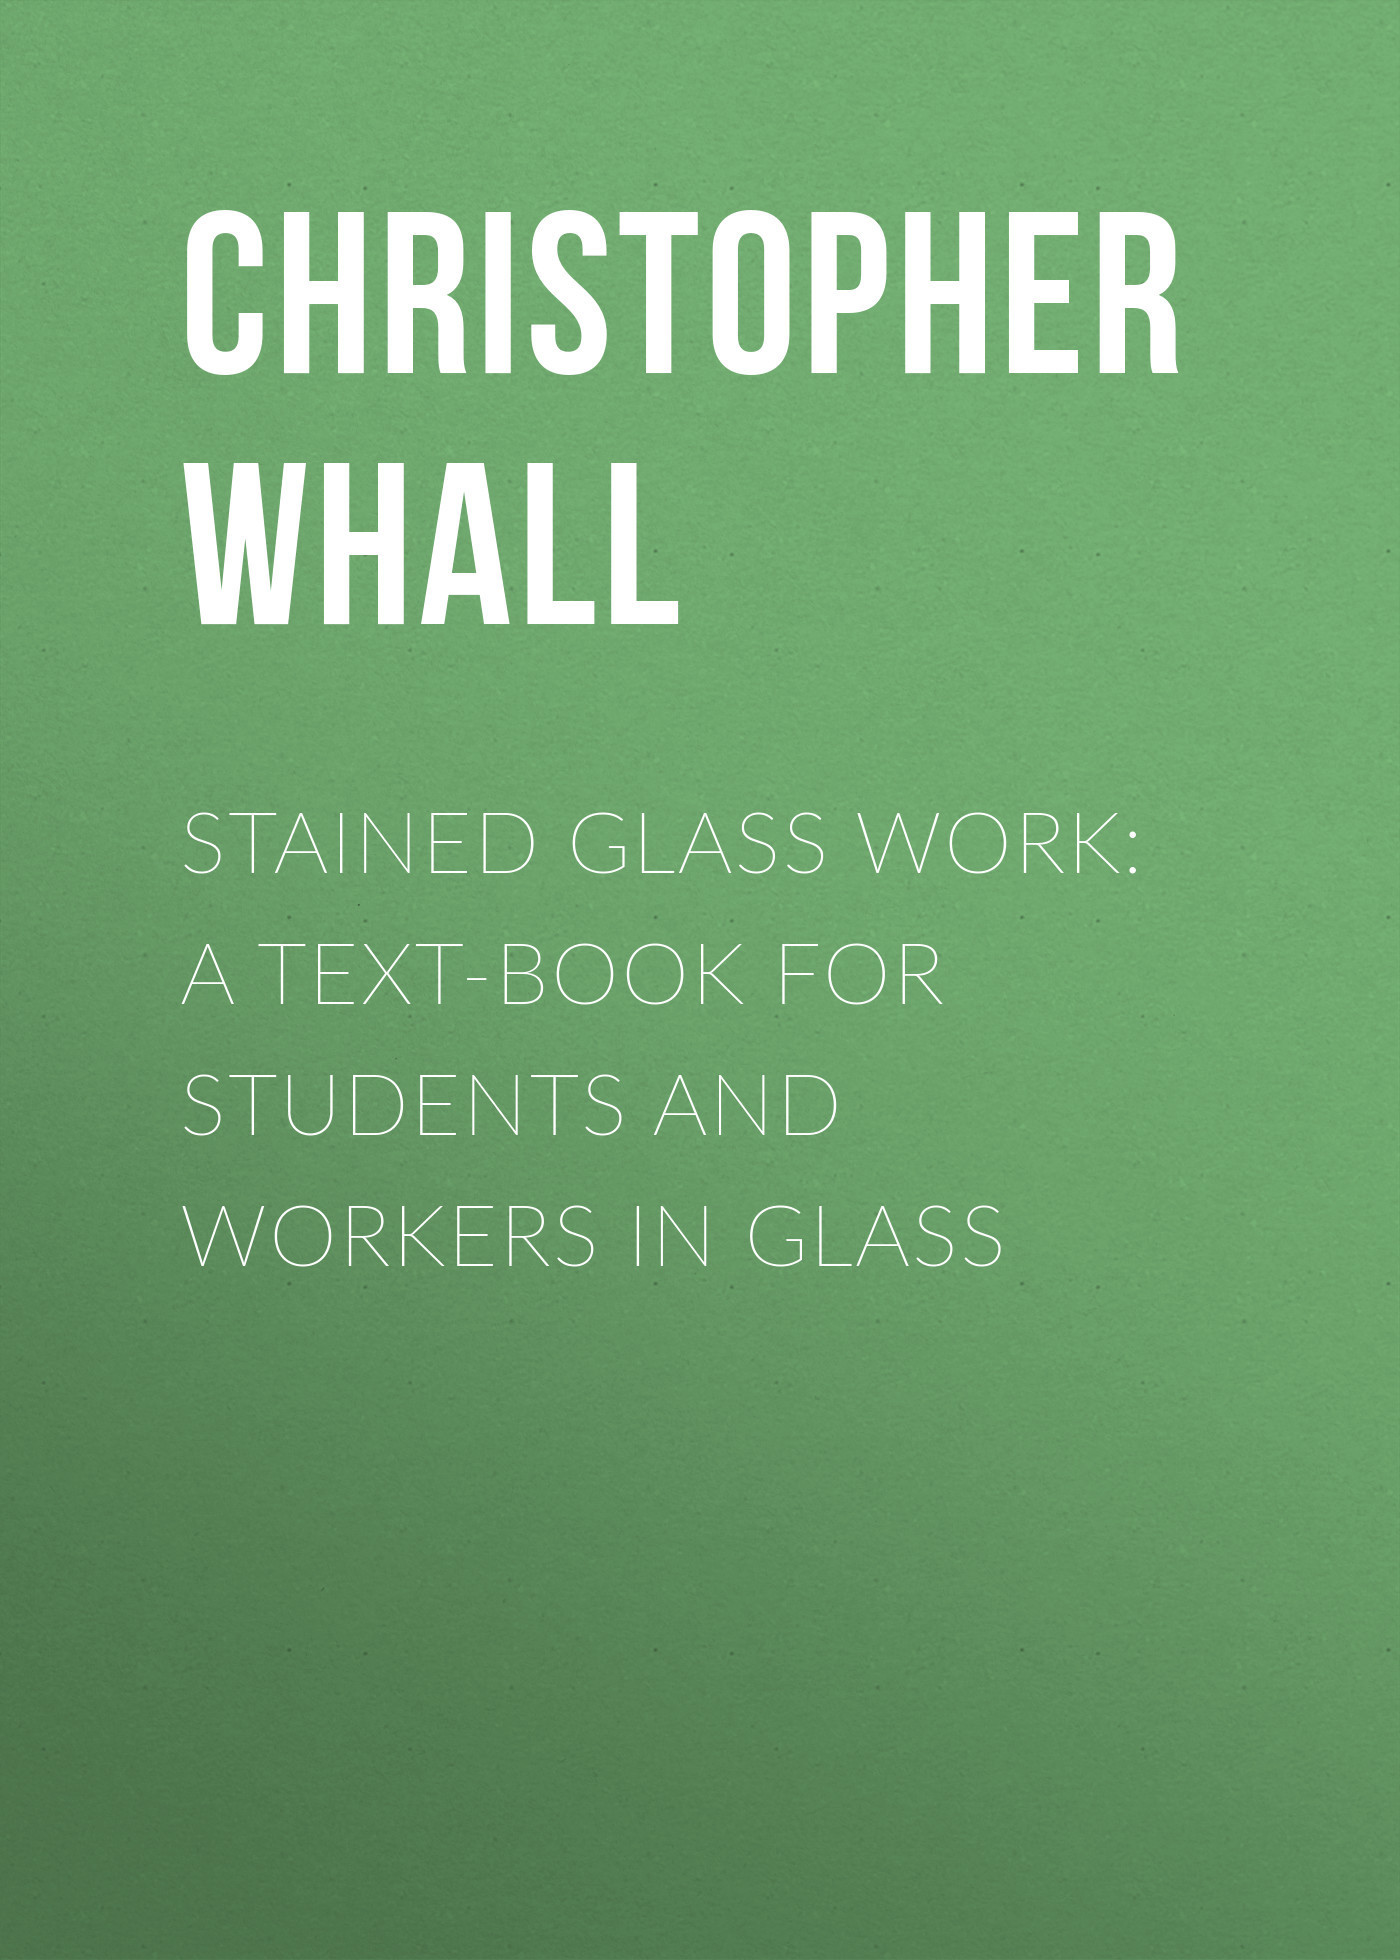 Christopher Whall Stained Glass Work: A text-book for students and workers in glass